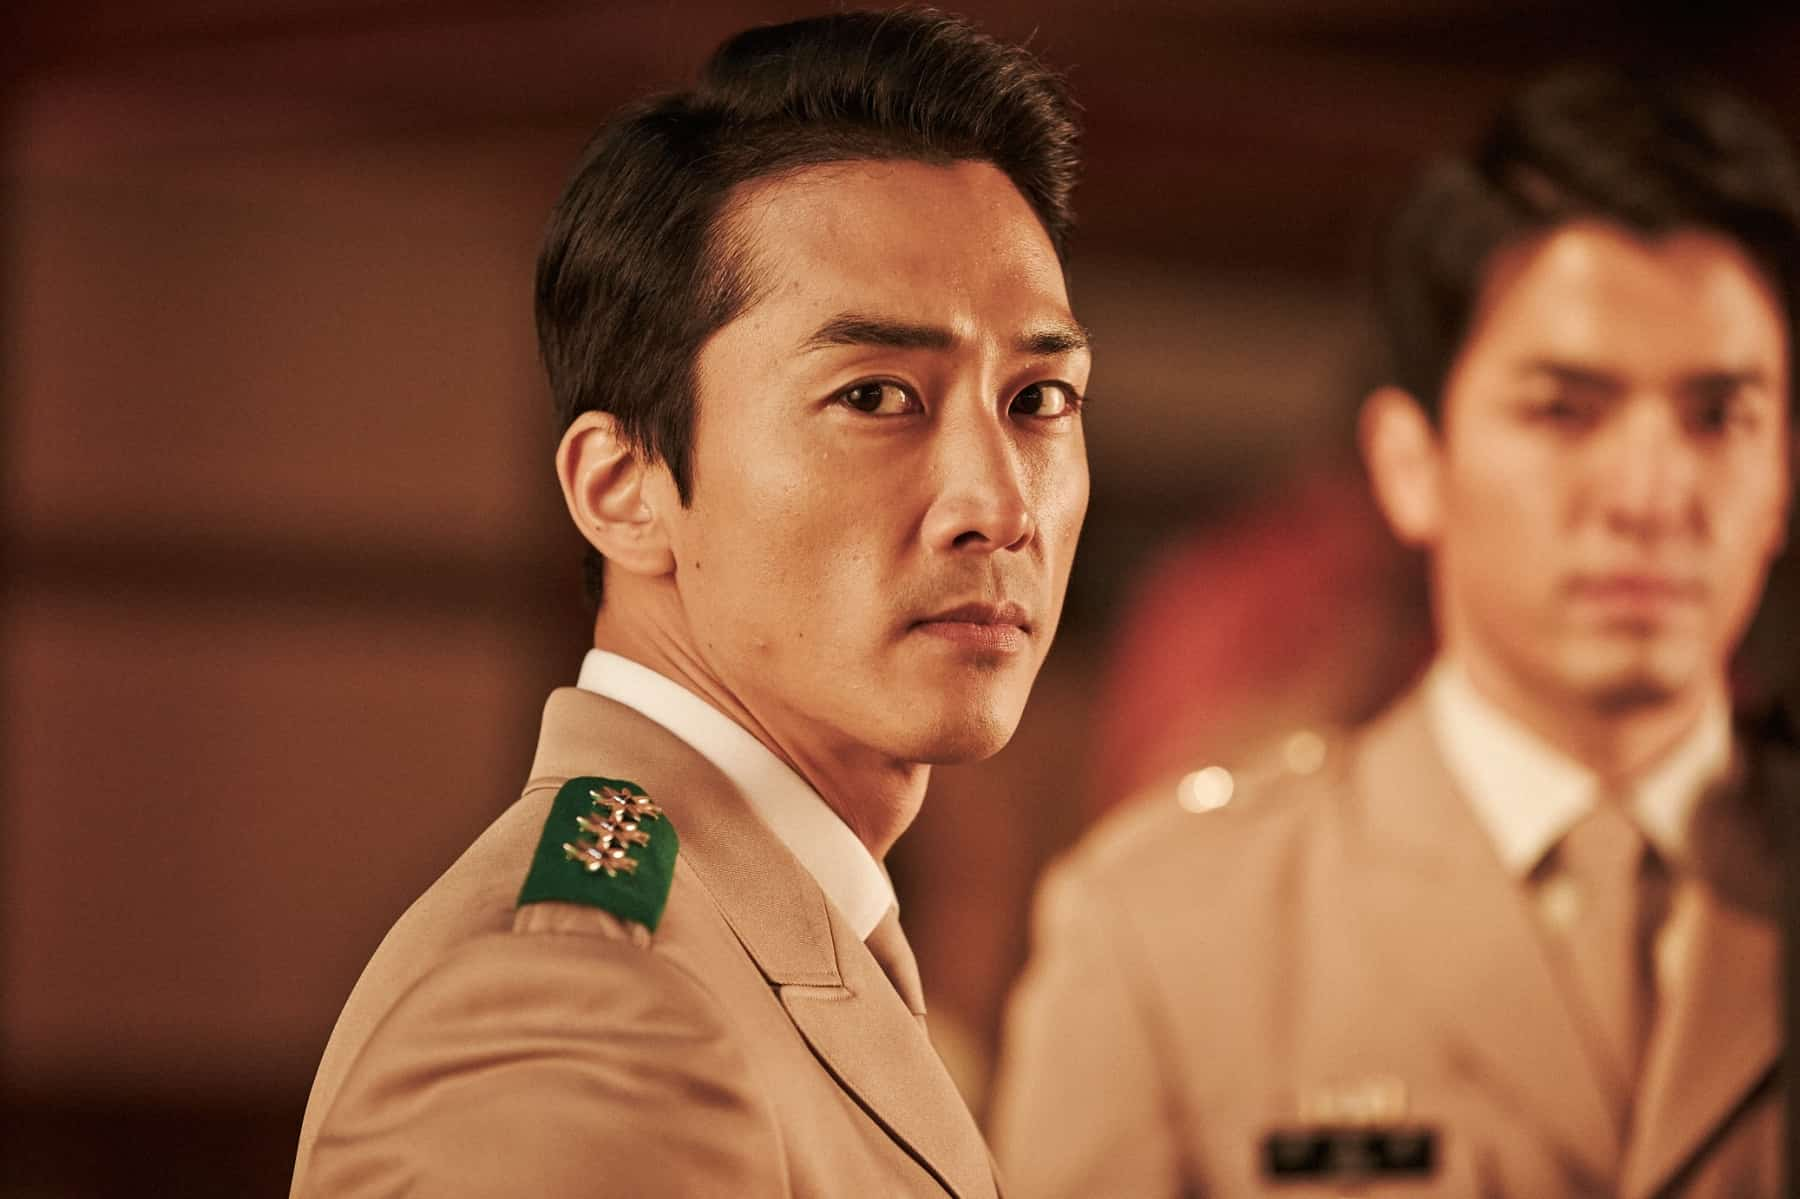 Korean superstar Song Seung Heon to promote erotic movie 'Obsessed' in Singapore